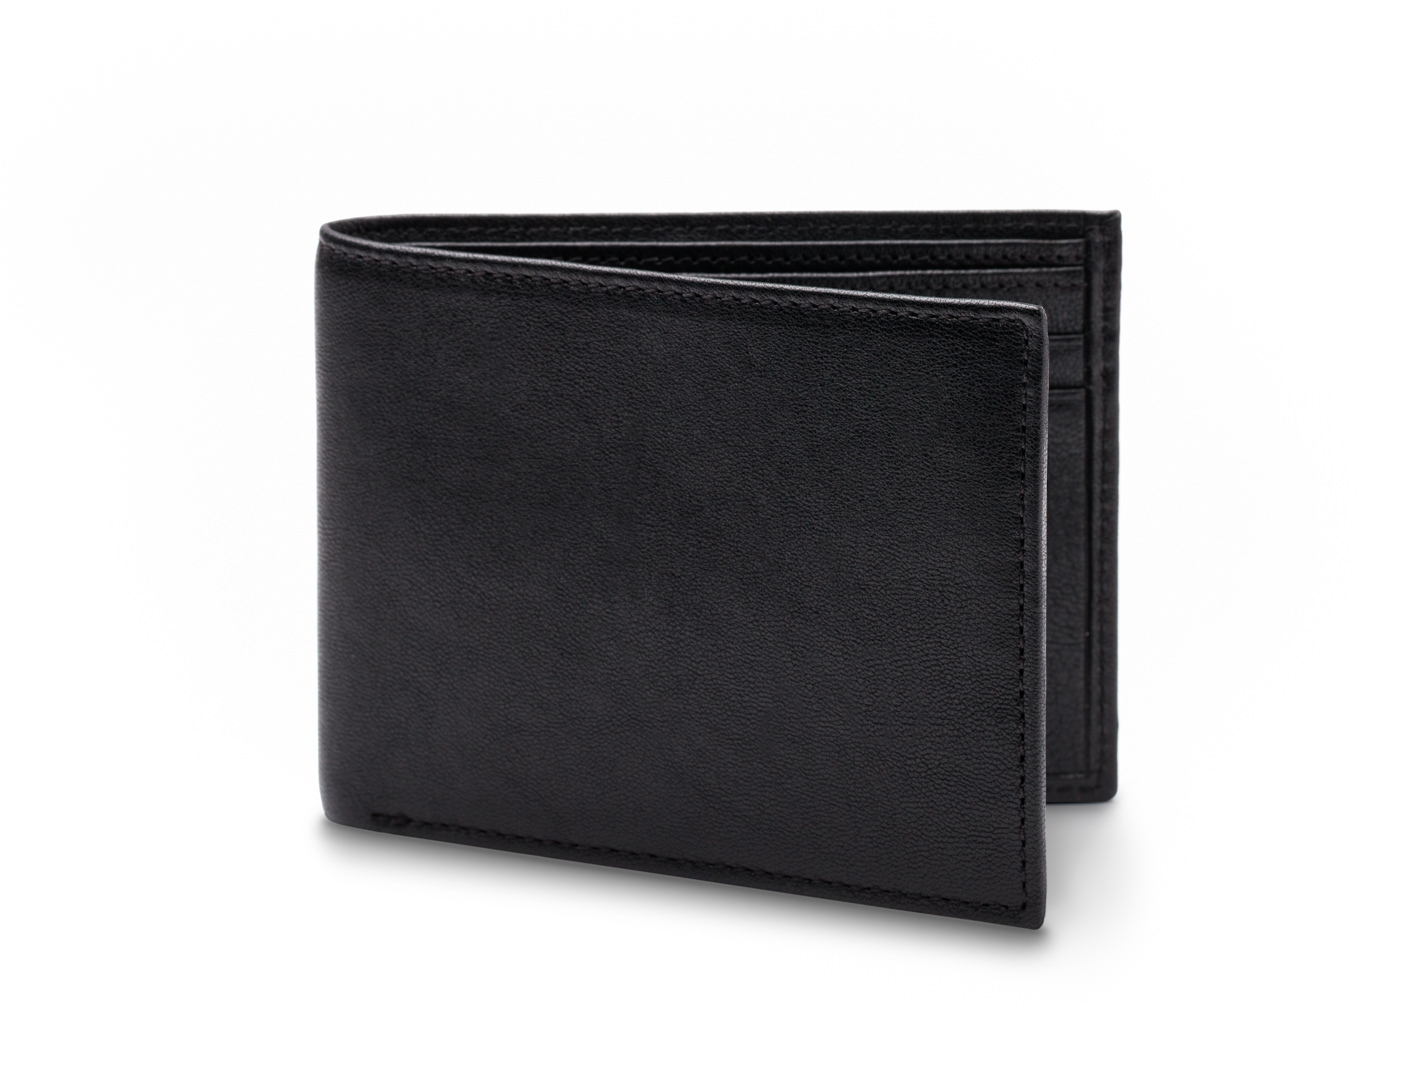 Executive I.D Wallet -150 Black - 150 Black